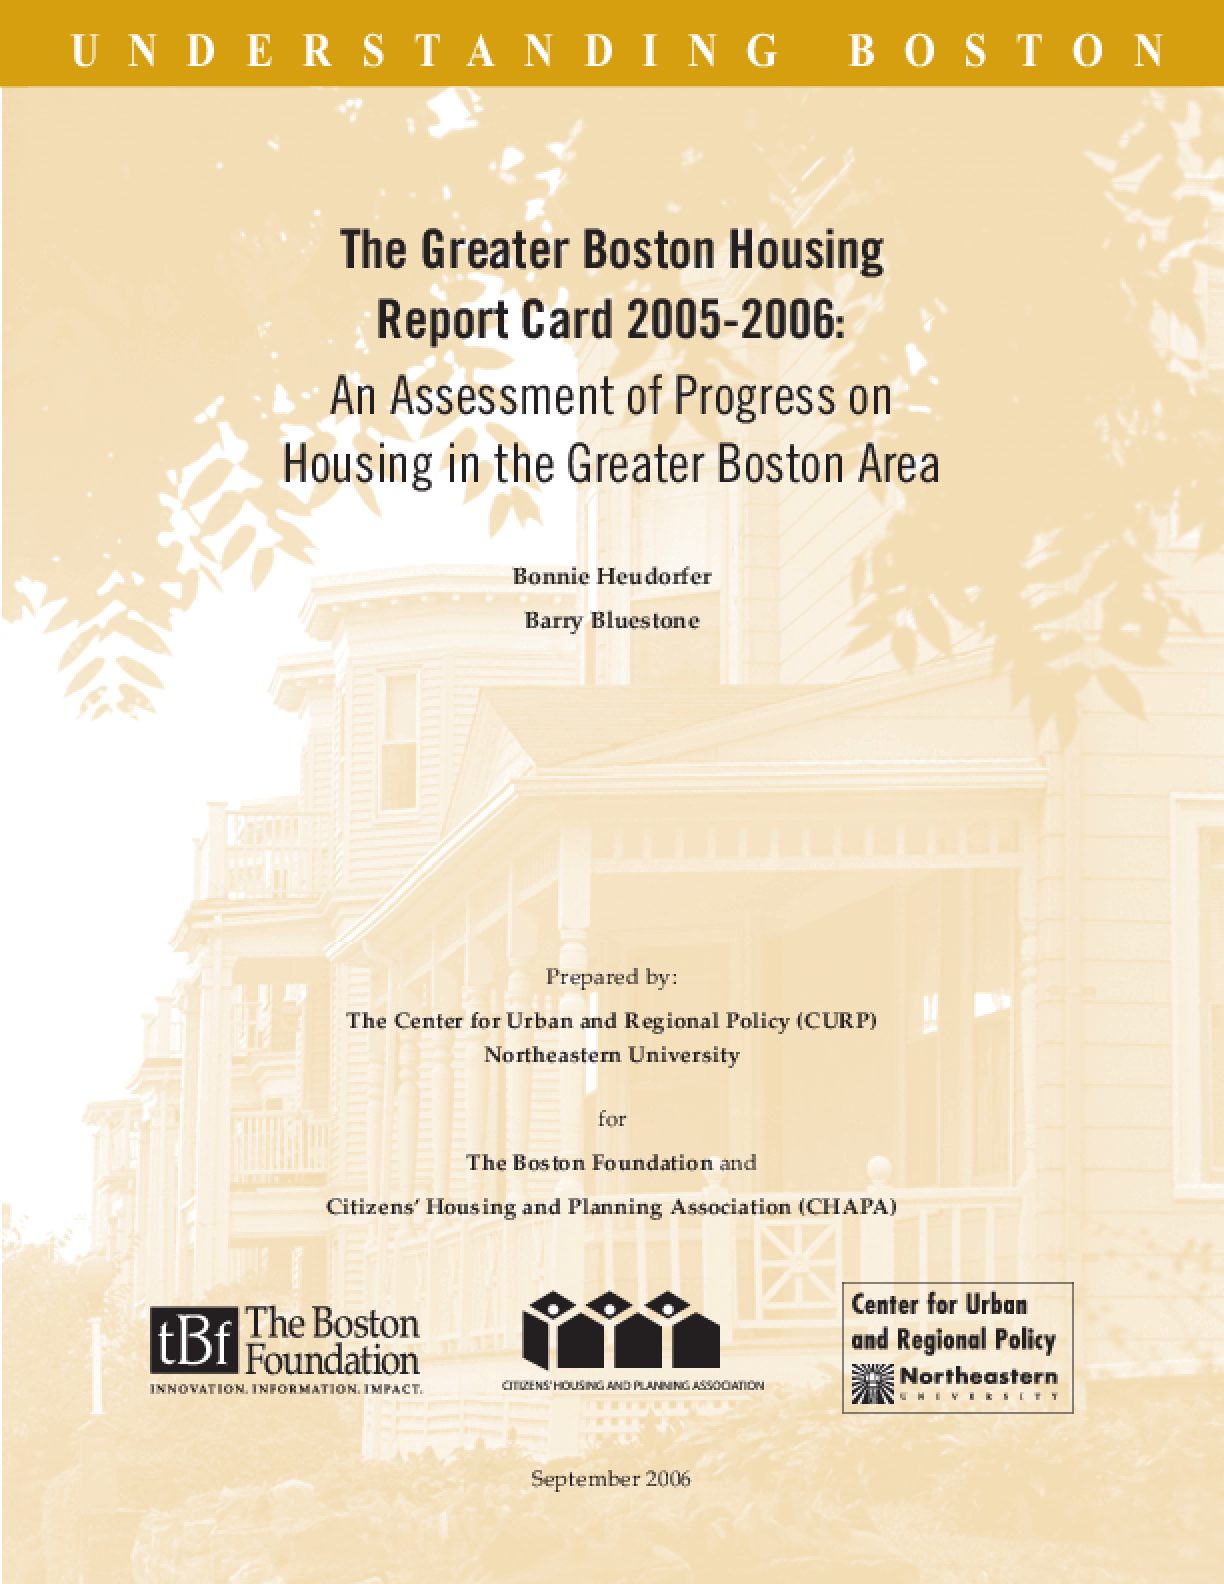 The Greater Boston Housing Report Card 2005-2006: An Assessment of Progress on Housing in the Greater Boston Area